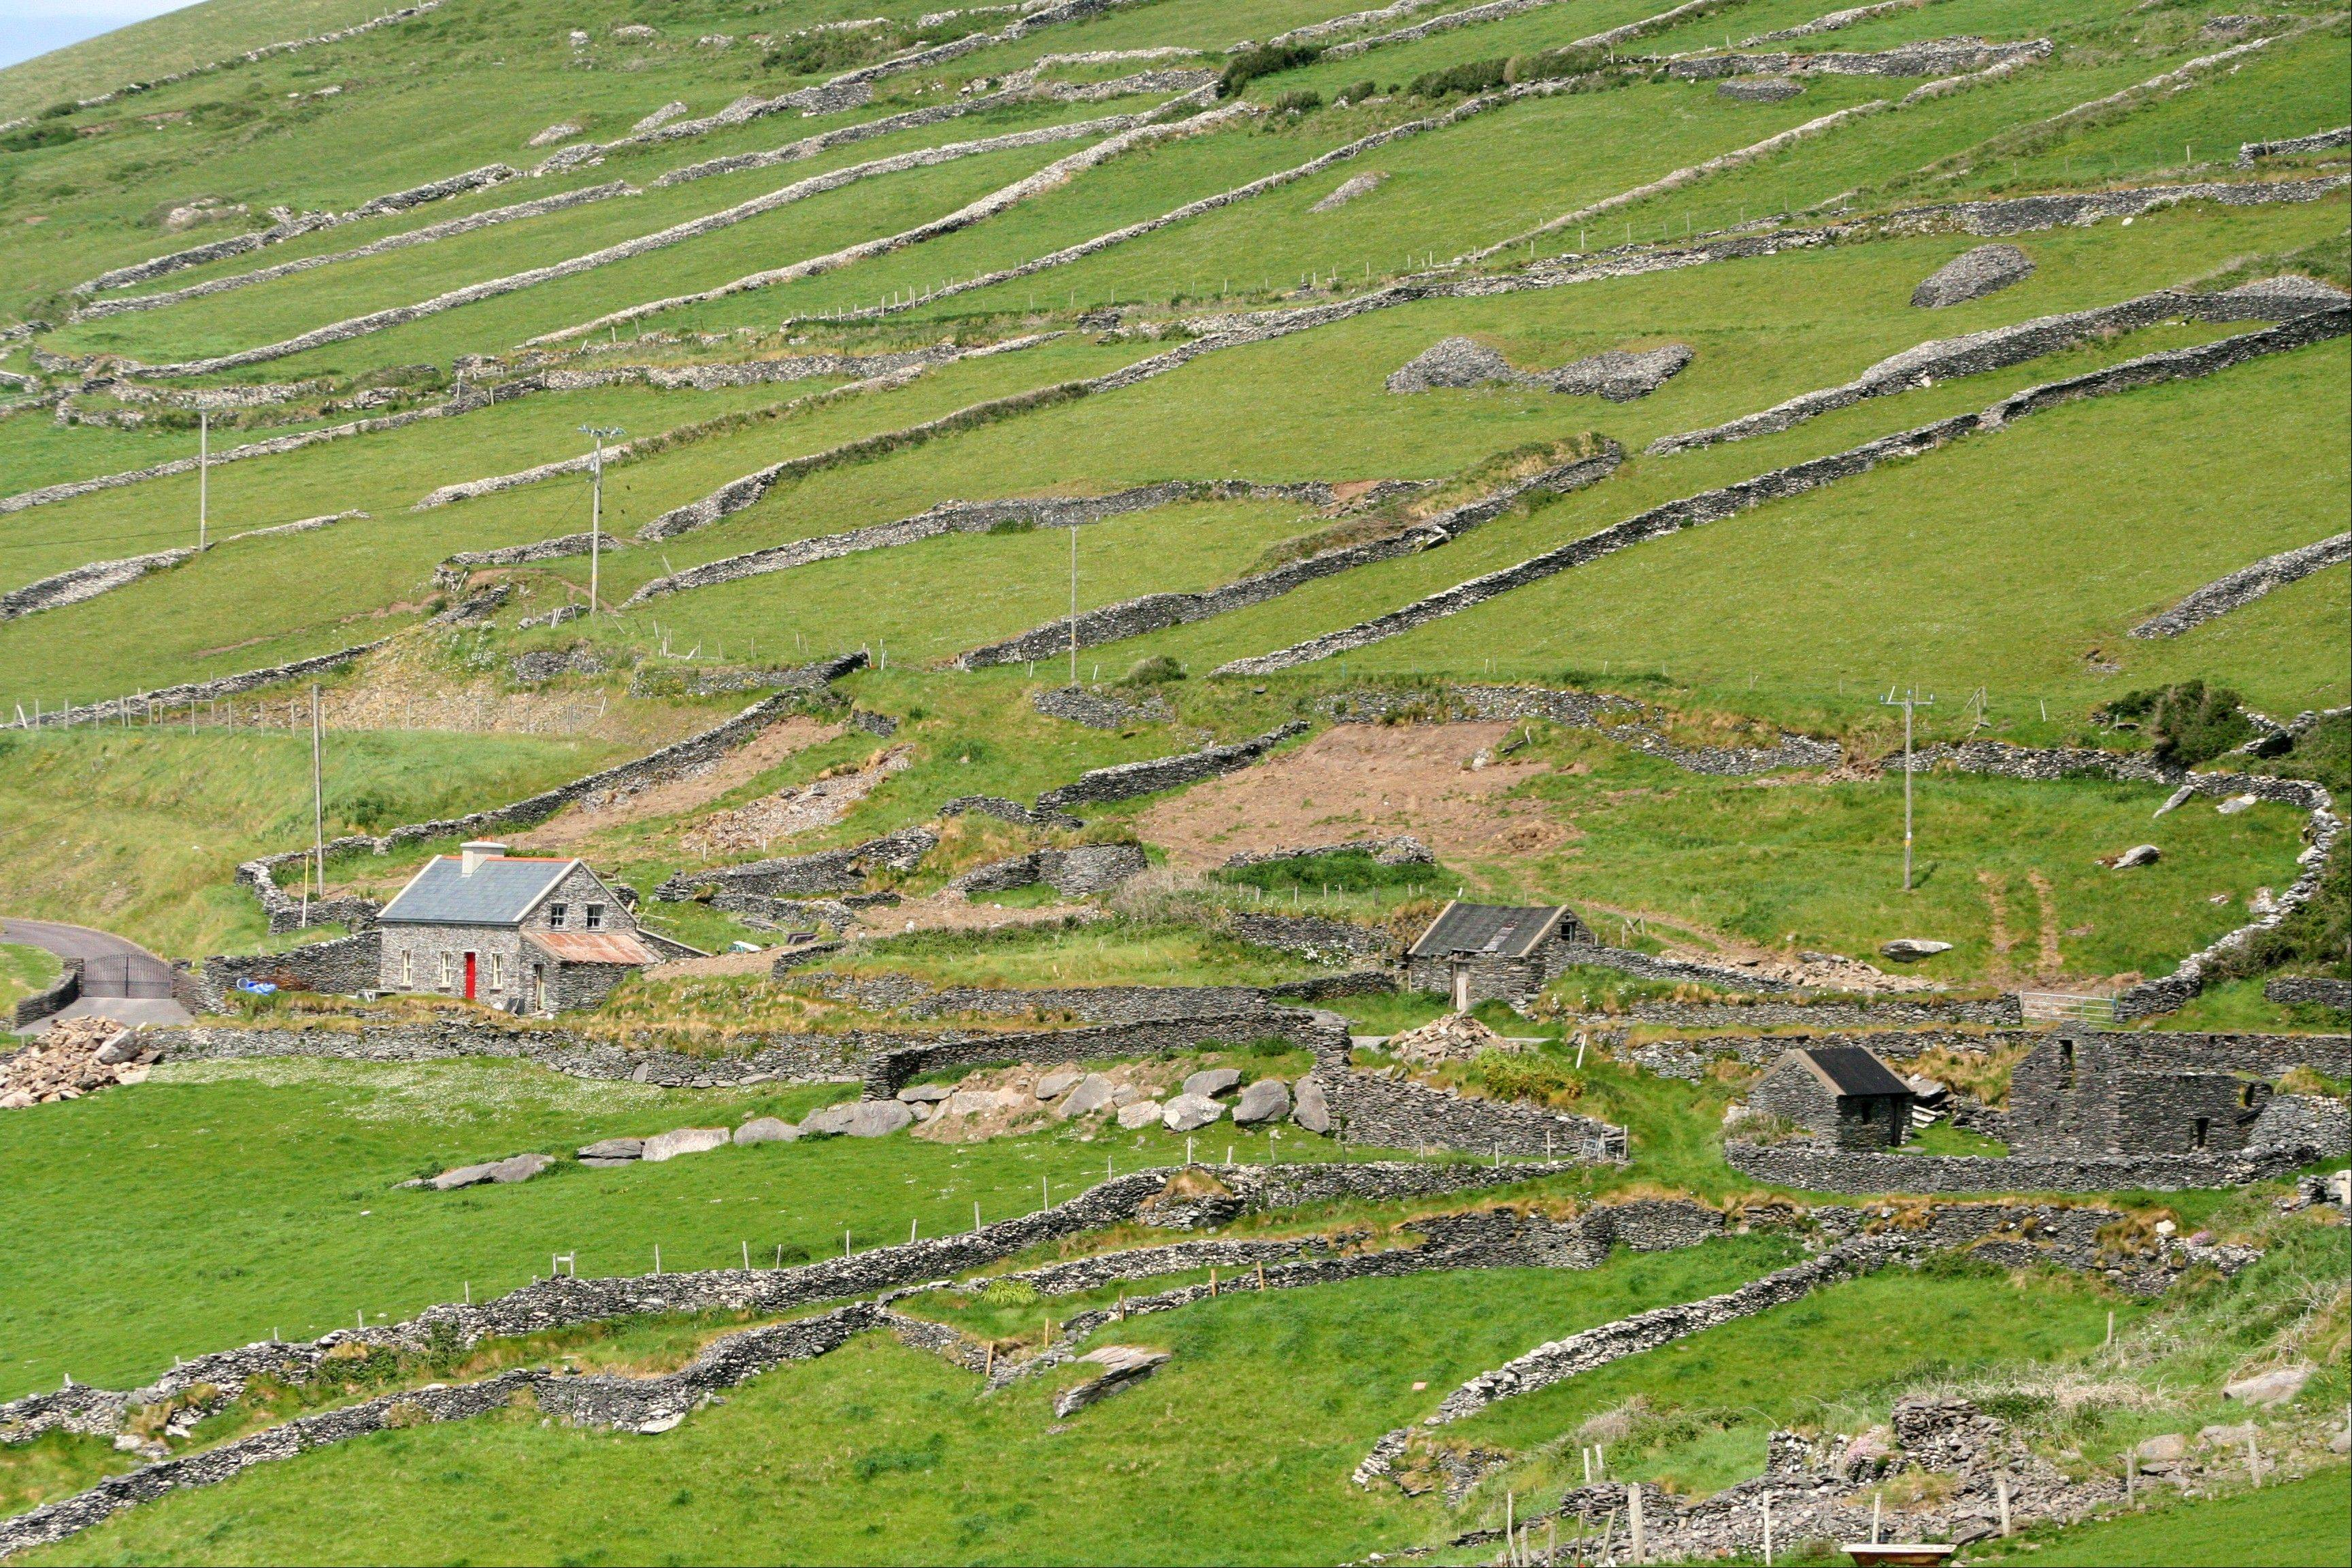 Stone walls on a hillside on the Dingle Peninsula, County Kerry, Ireland.